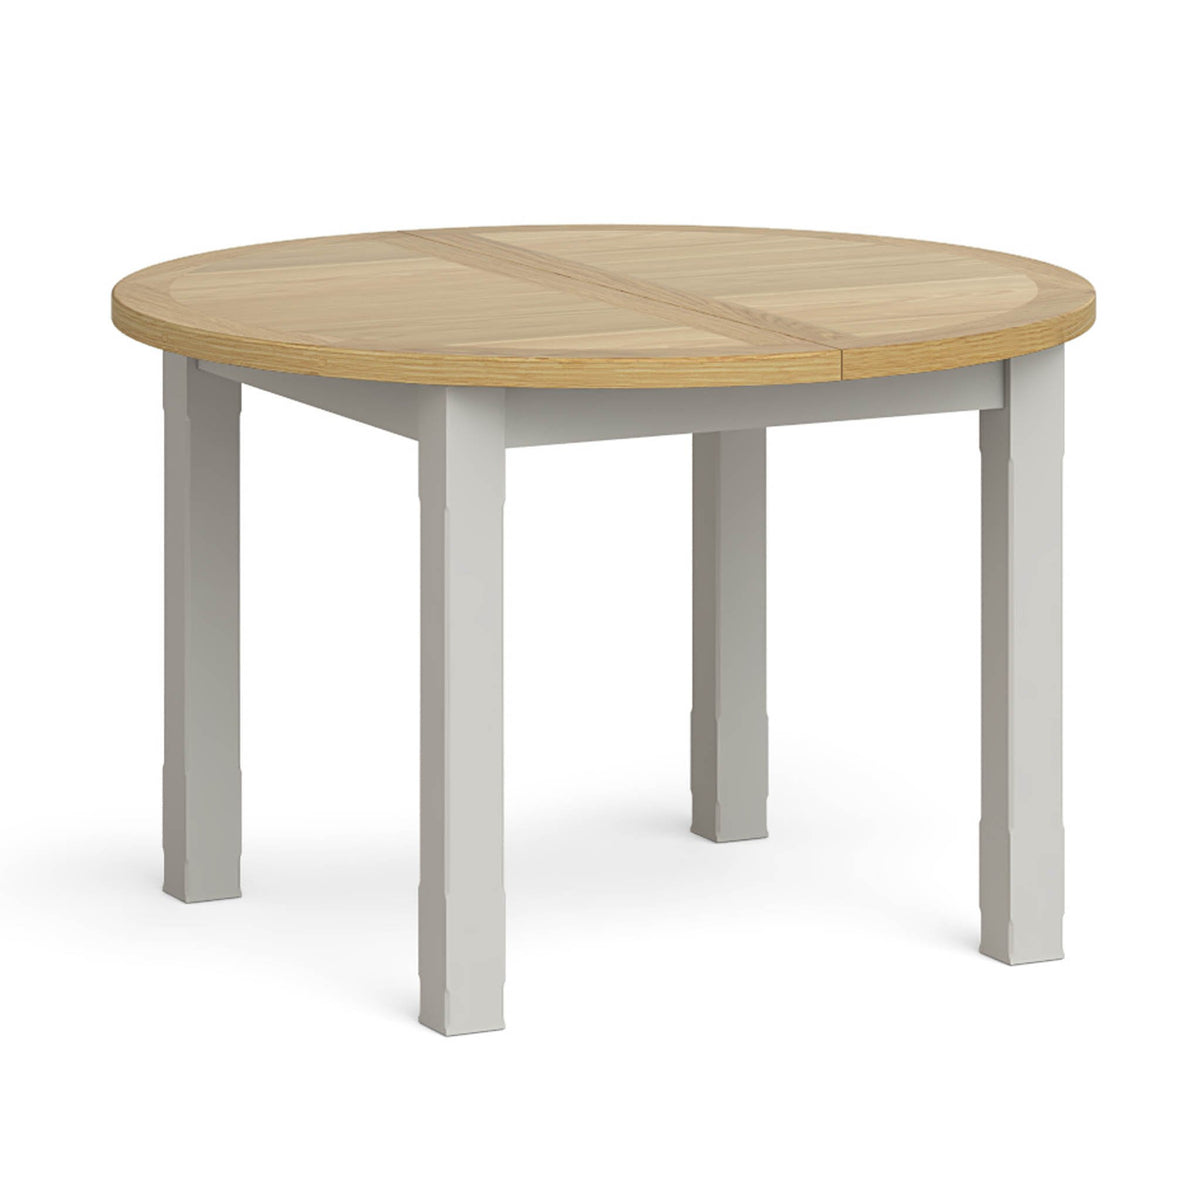 Lundy Grey Round Extending Dining Table - Closed view